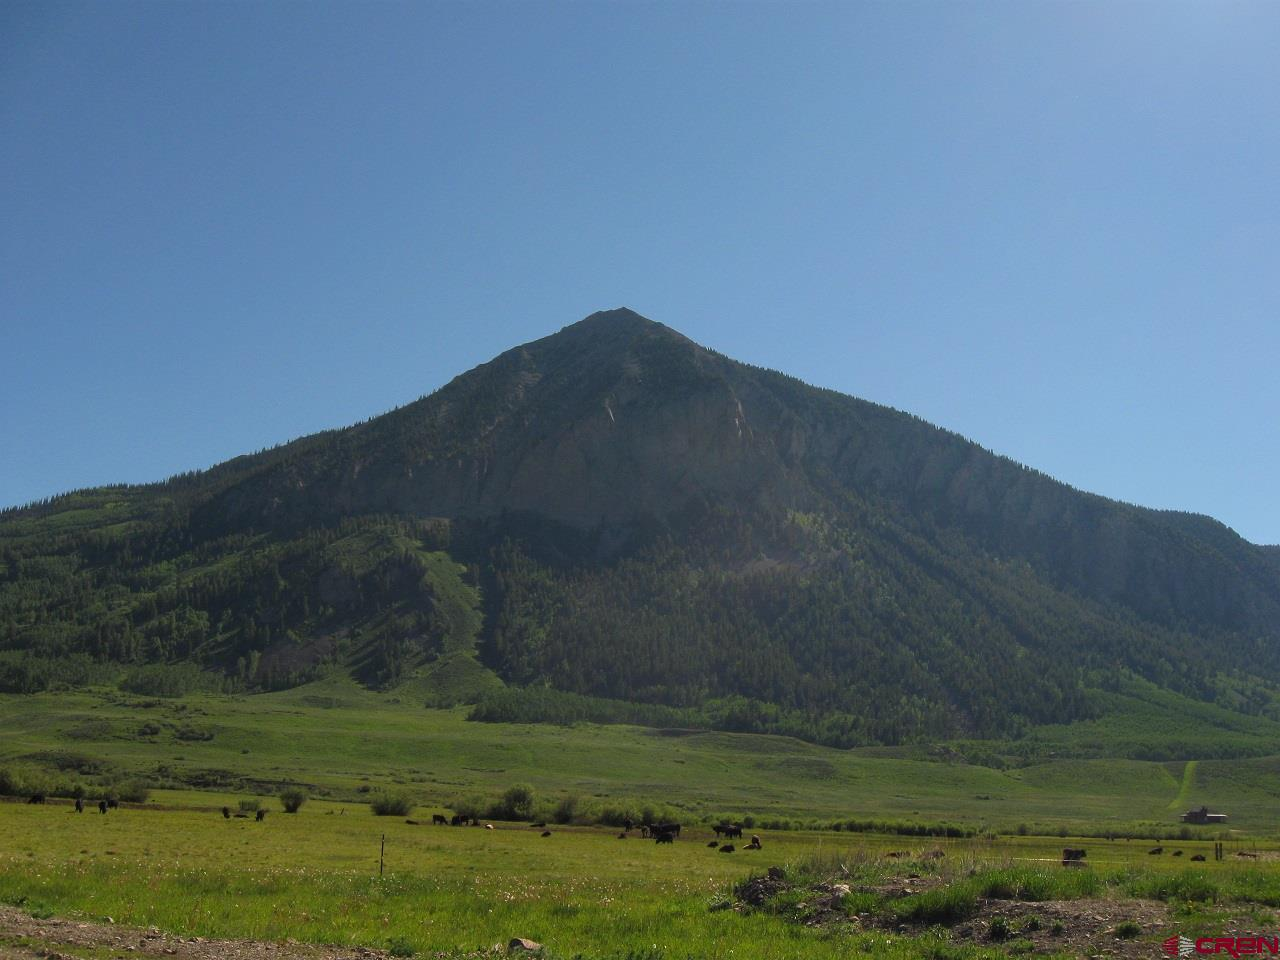 MLS# 757733 - 11 - 341 Mccormick Ranch Road, Crested Butte, CO 81224